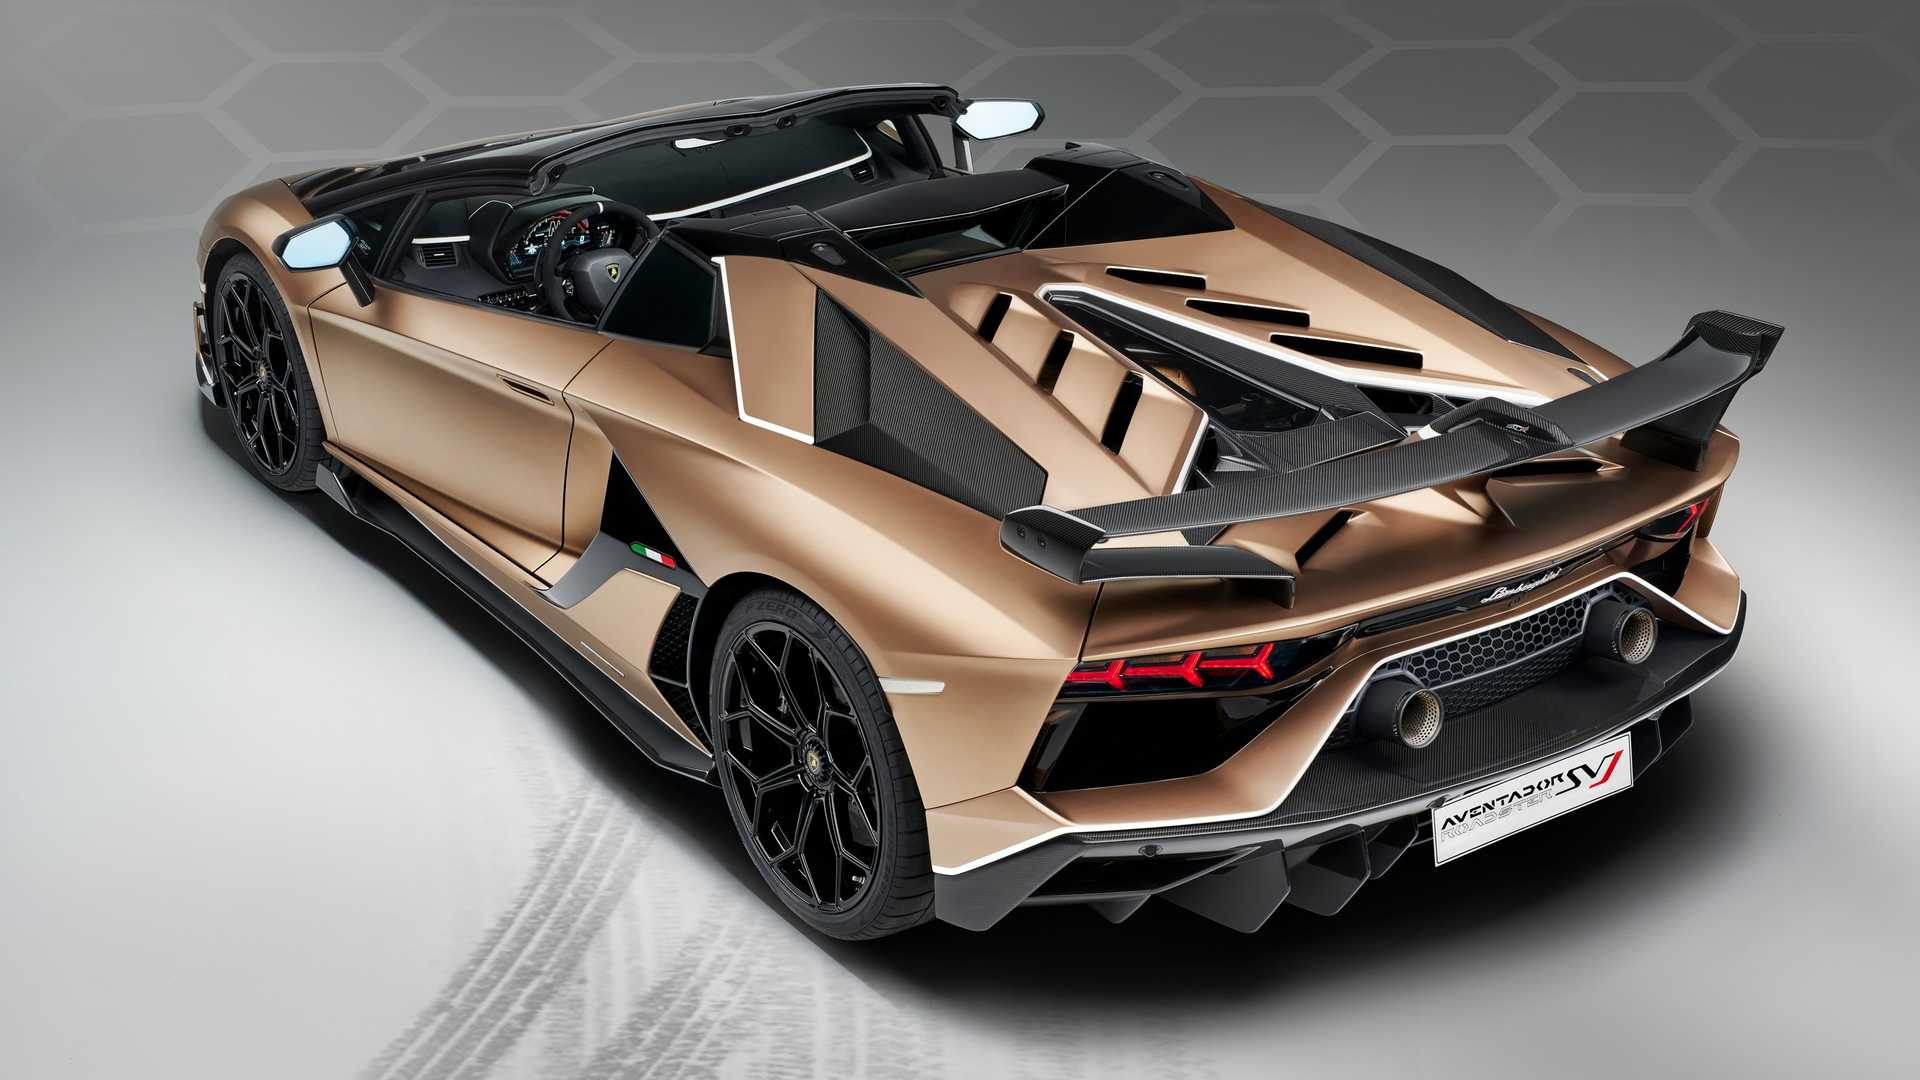 2020 Lamborghini Aventador Svj Roadster Rear Three Quarter Wallpaper